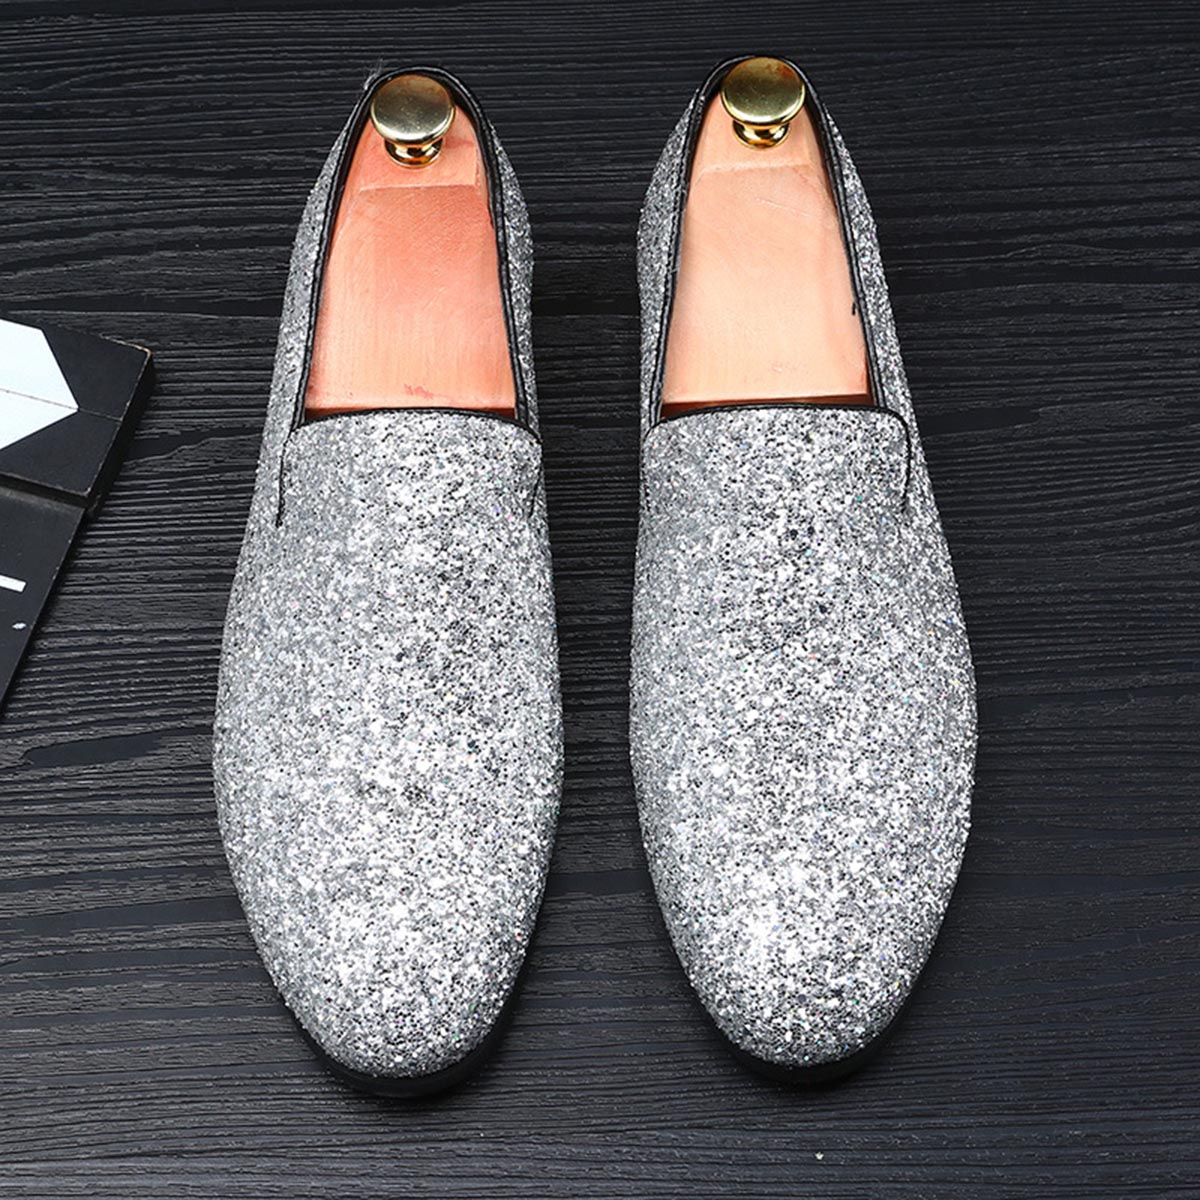 Sequins with Business Shoes